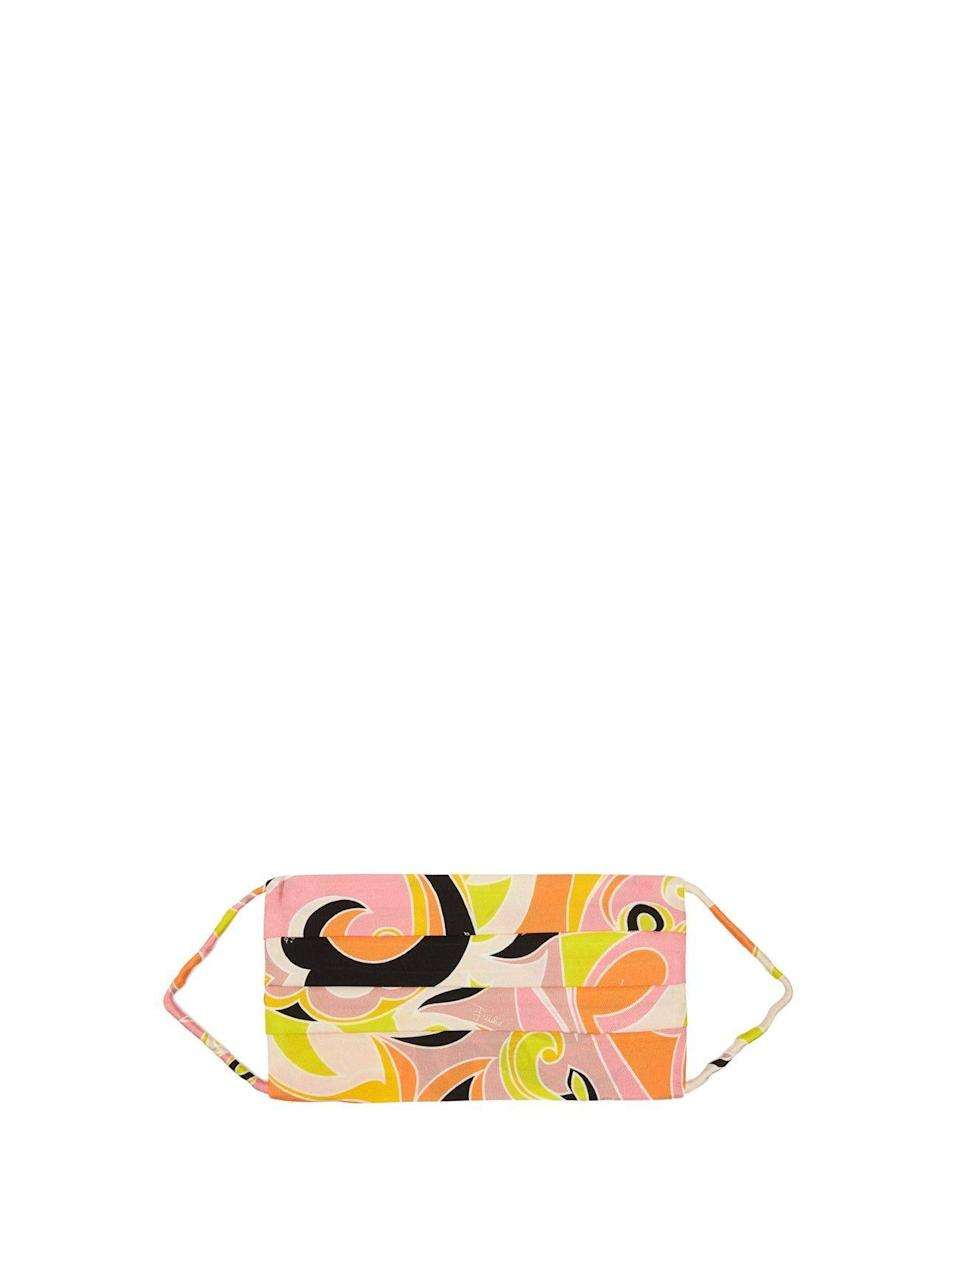 """<p><strong>Emilio Pucci </strong></p><p>matchesfashion.com</p><p><strong>$120.00</strong></p><p><a href=""""https://go.redirectingat.com?id=74968X1596630&url=https%3A%2F%2Fwww.matchesfashion.com%2Fus%2Fproducts%2FEmilio-Pucci-Dinamica-print-silk-face-covering-1397816&sref=https%3A%2F%2Fwww.harpersbazaar.com%2Ffashion%2Ftrends%2Fg32192171%2Ffashion-brands-masks-coronavirus%2F"""" rel=""""nofollow noopener"""" target=""""_blank"""" data-ylk=""""slk:Shop Now"""" class=""""link rapid-noclick-resp"""">Shop Now</a></p><p>This showstopping face mask will pair nicely with your sun hat for a walk around the beach or through the park.</p>"""